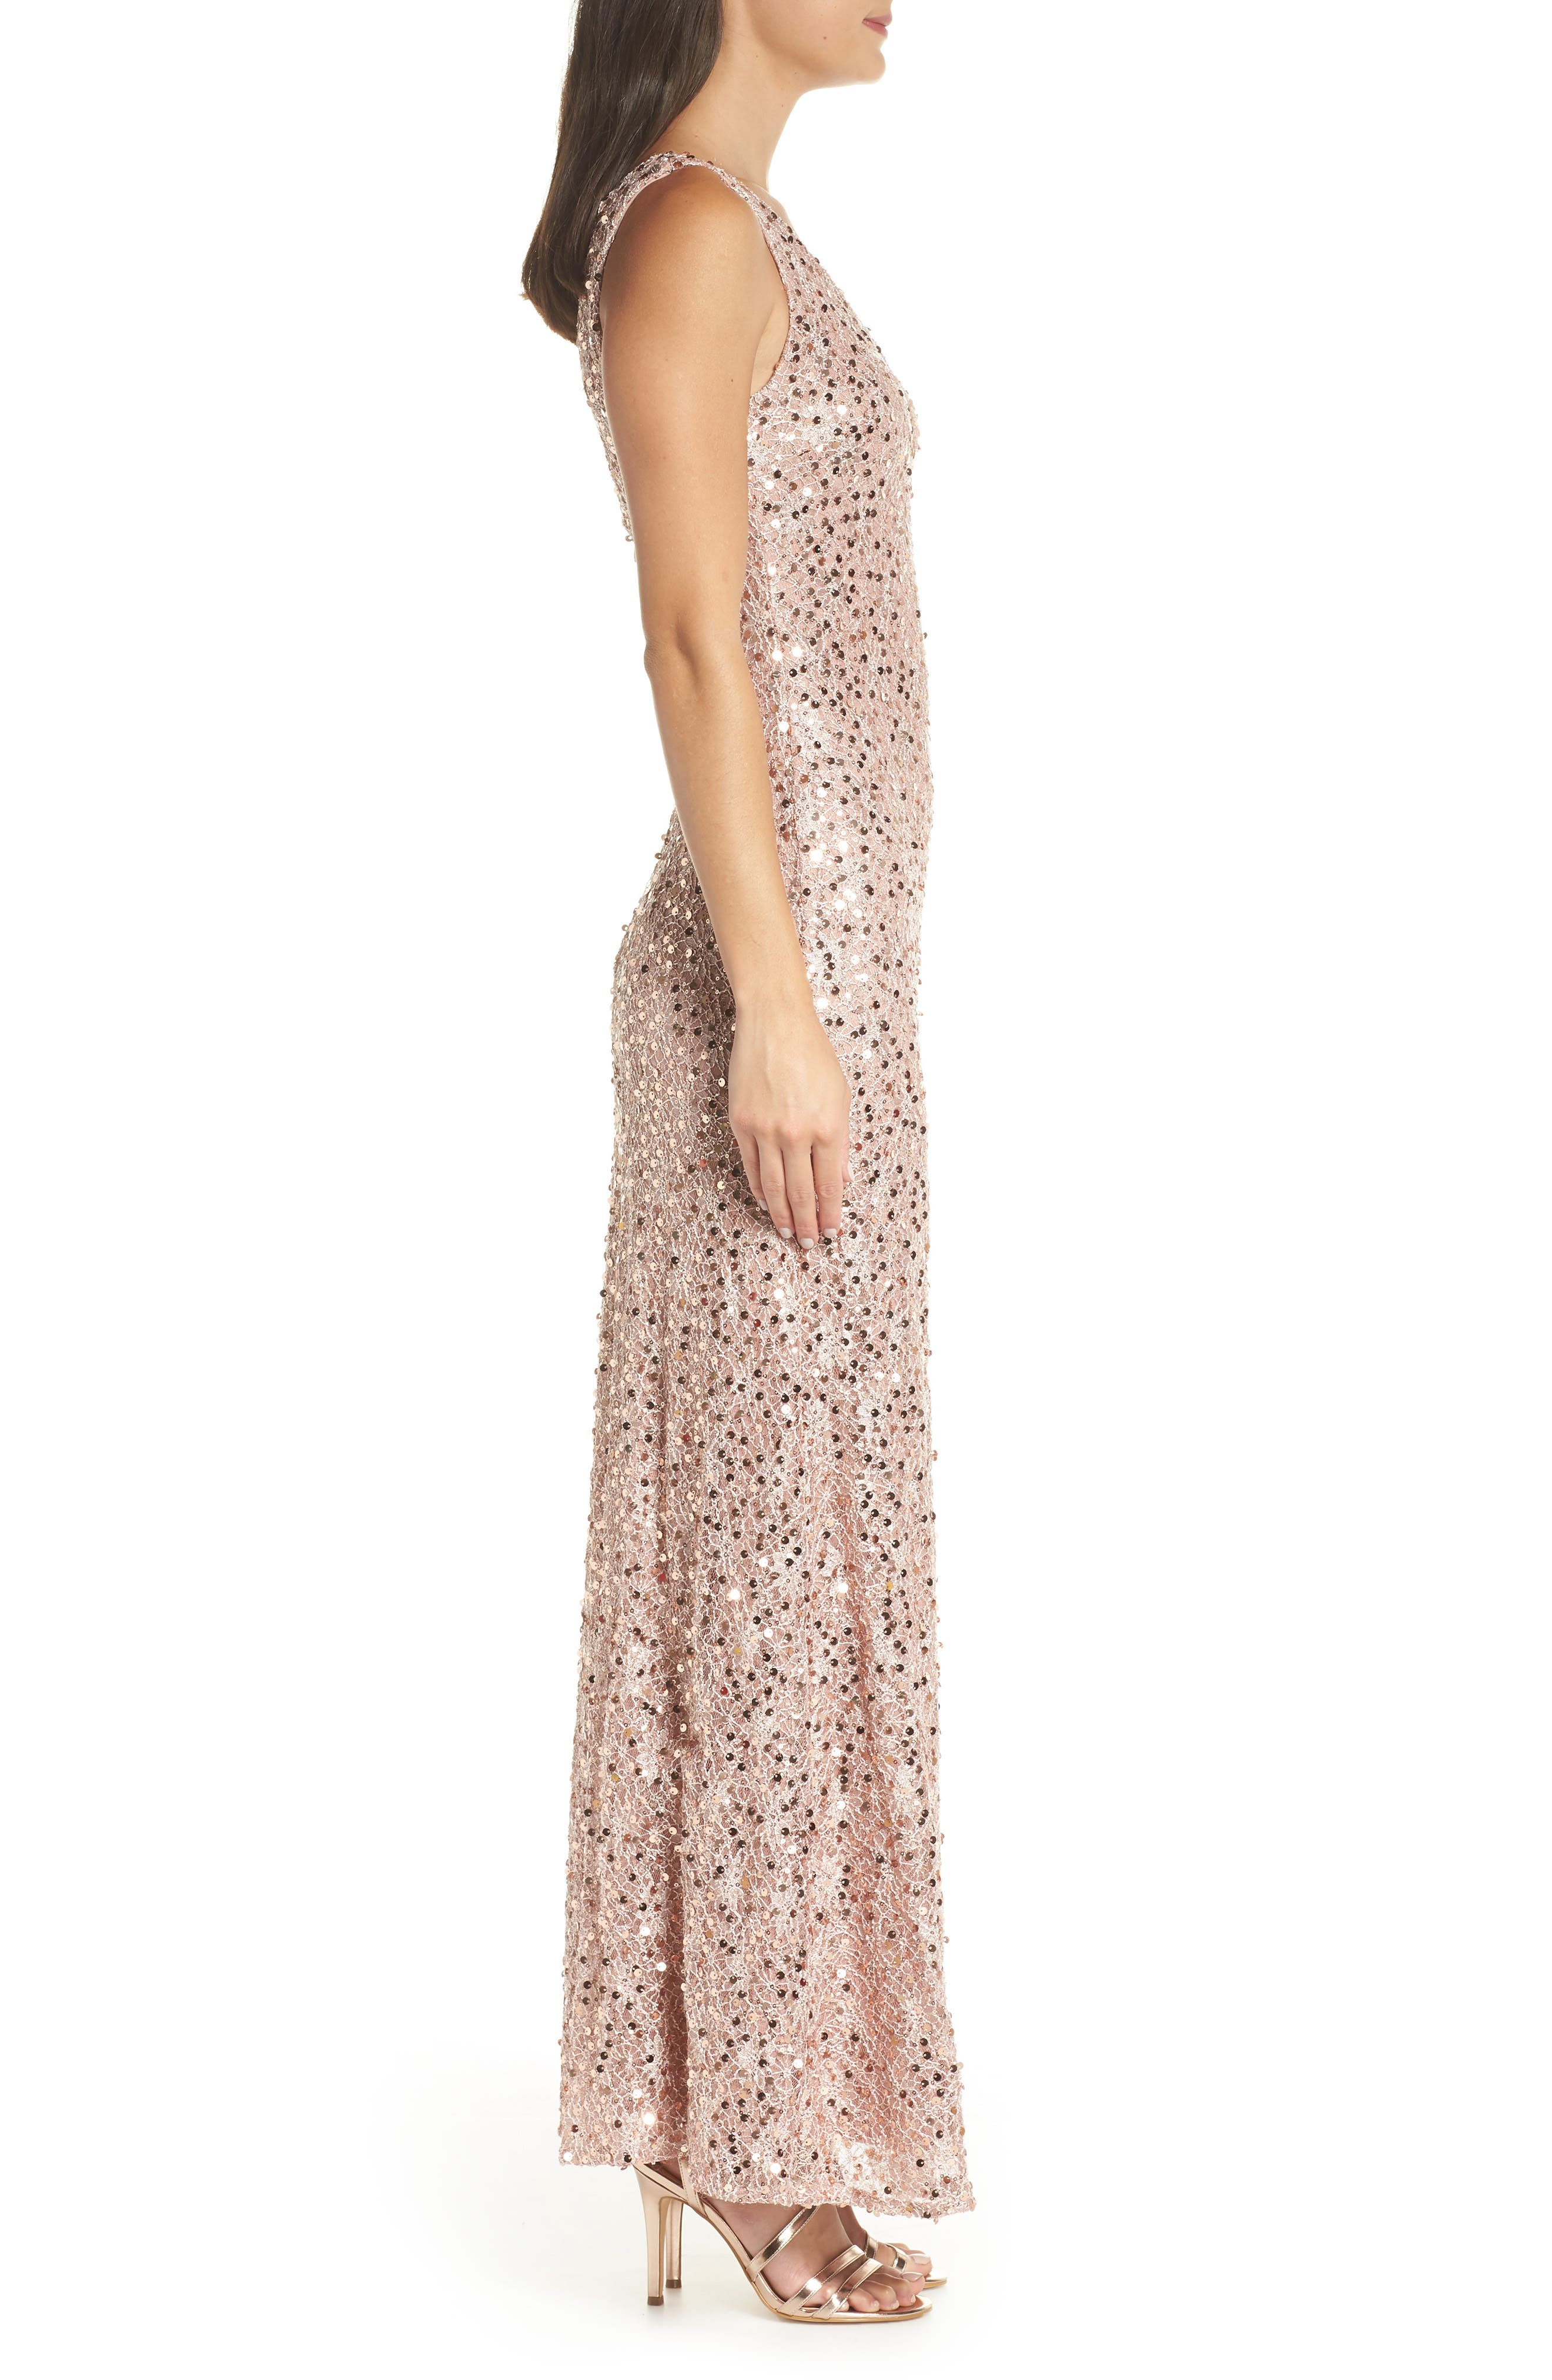 MORGAN & CO., Sequin & Lace Gown, Alternate thumbnail 4, color, ROSE GOLD